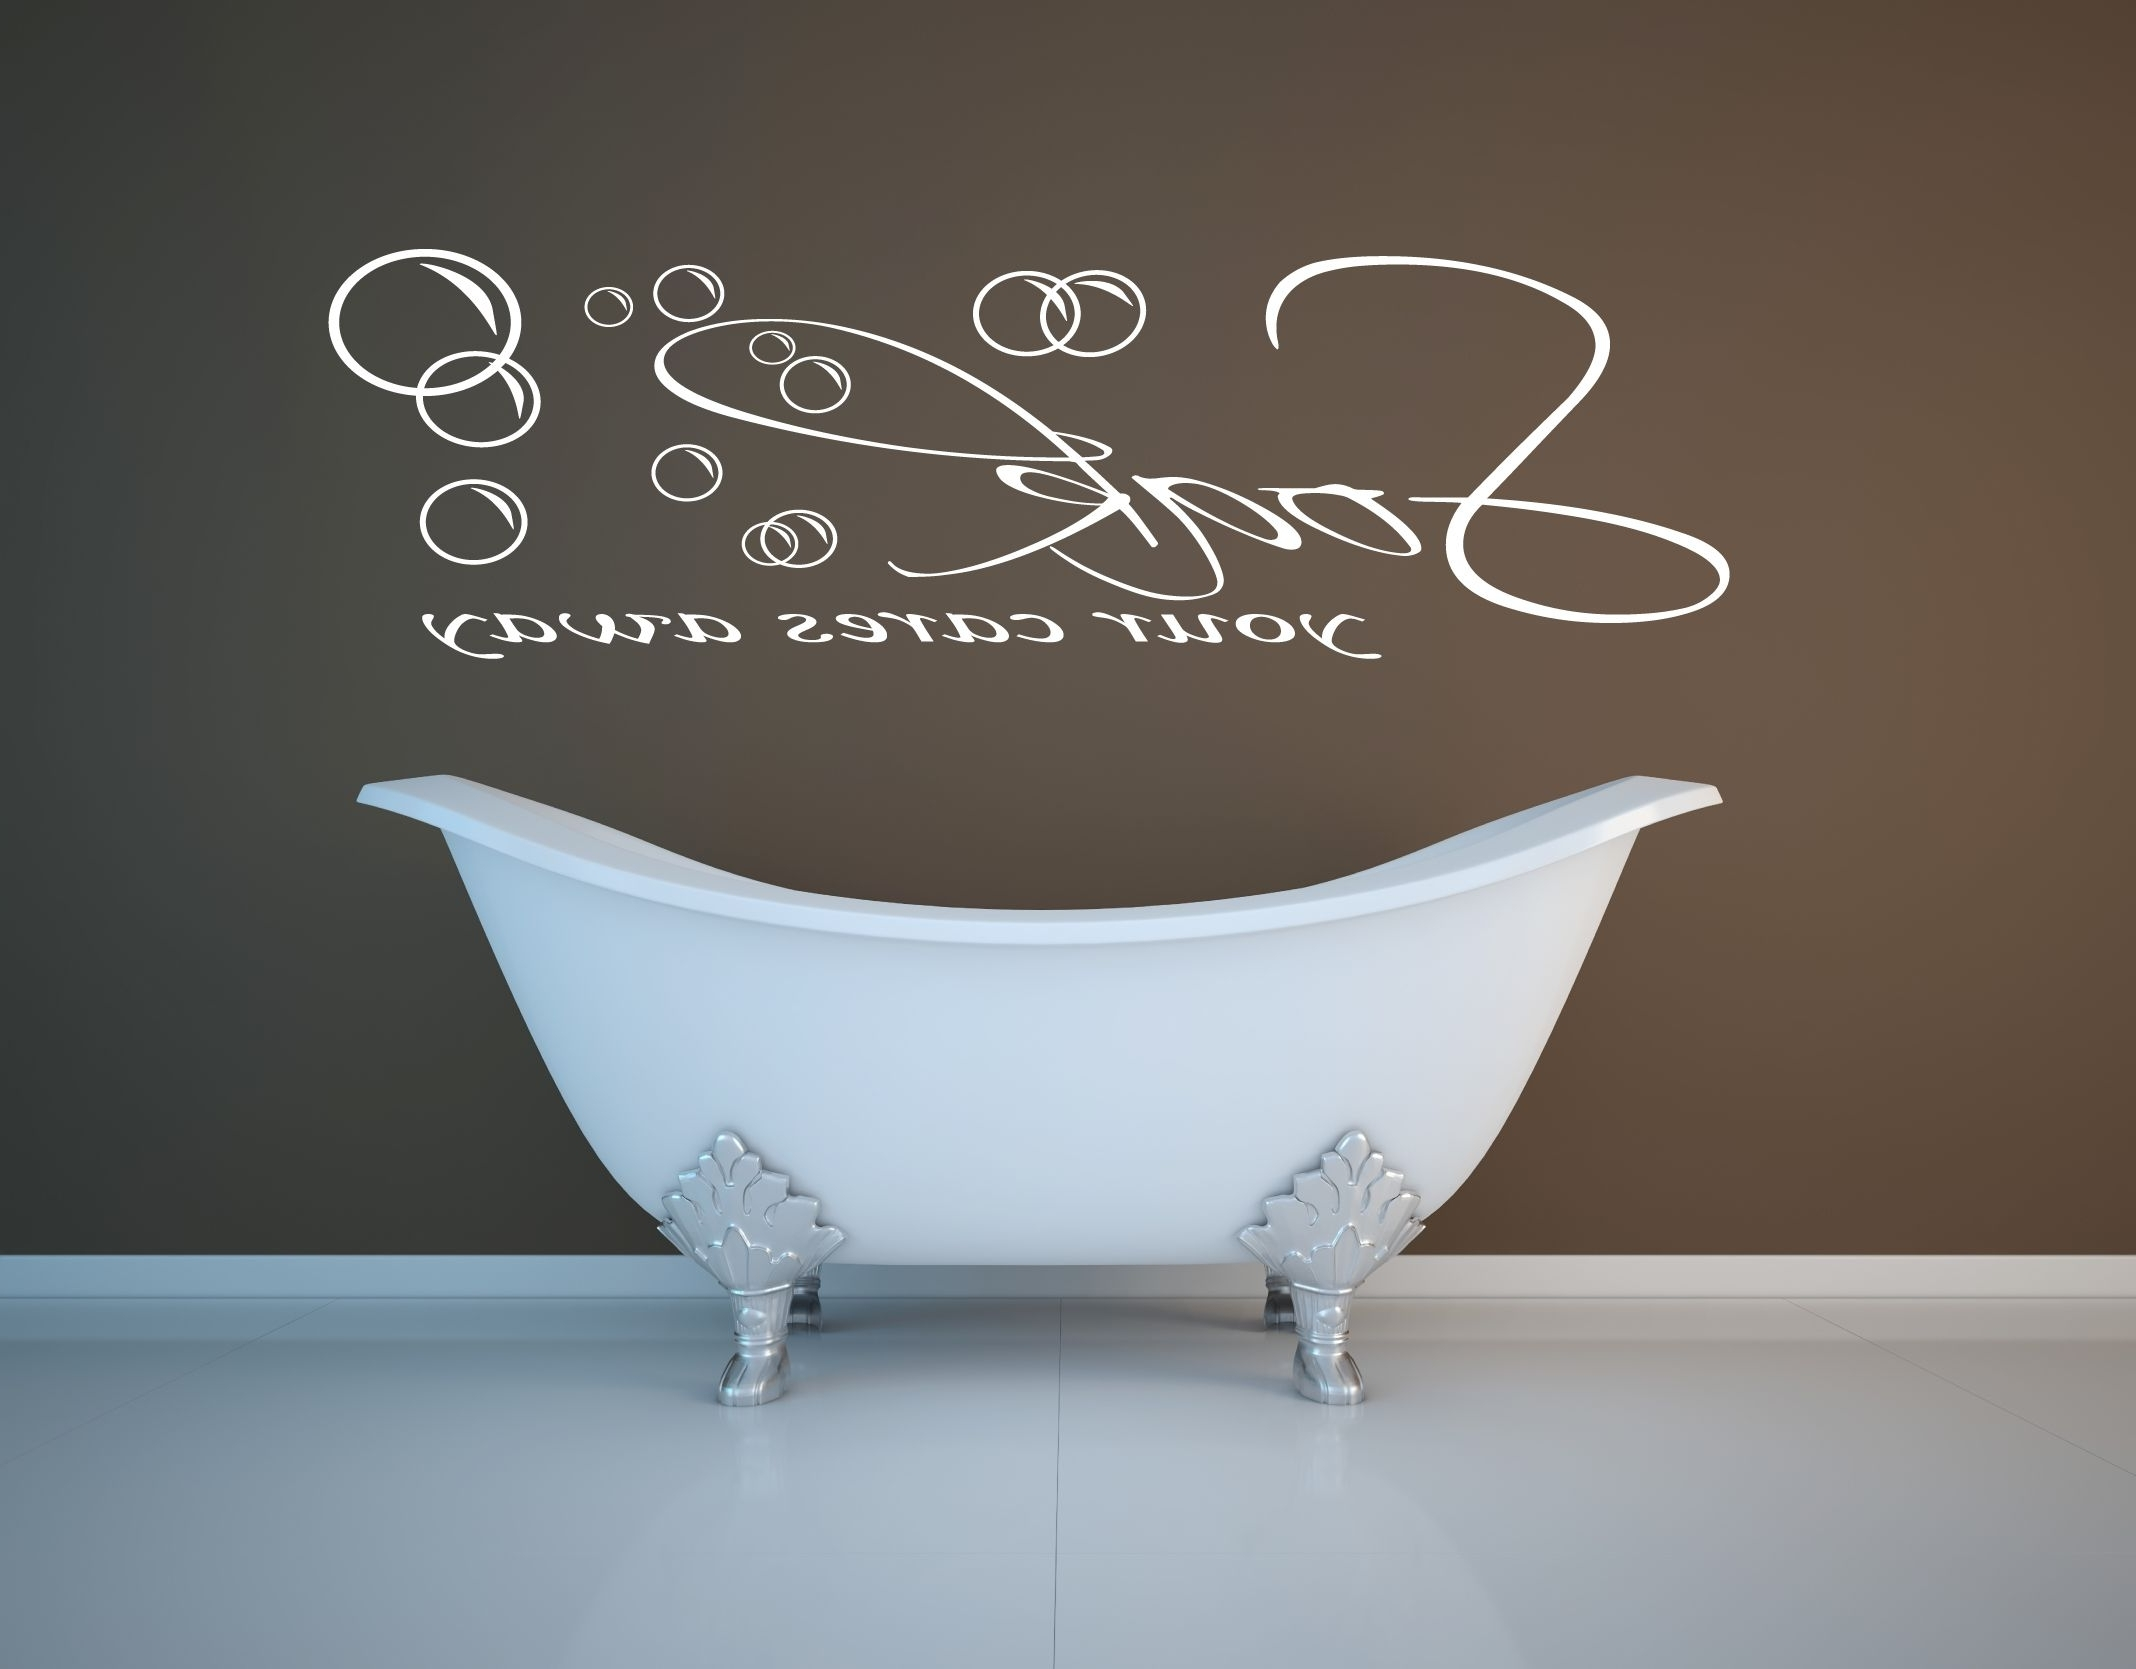 Modern Bathroom Wall Art Décor – Yonohomedesign With Regard To Latest Bathroom Wall Art (View 8 of 15)